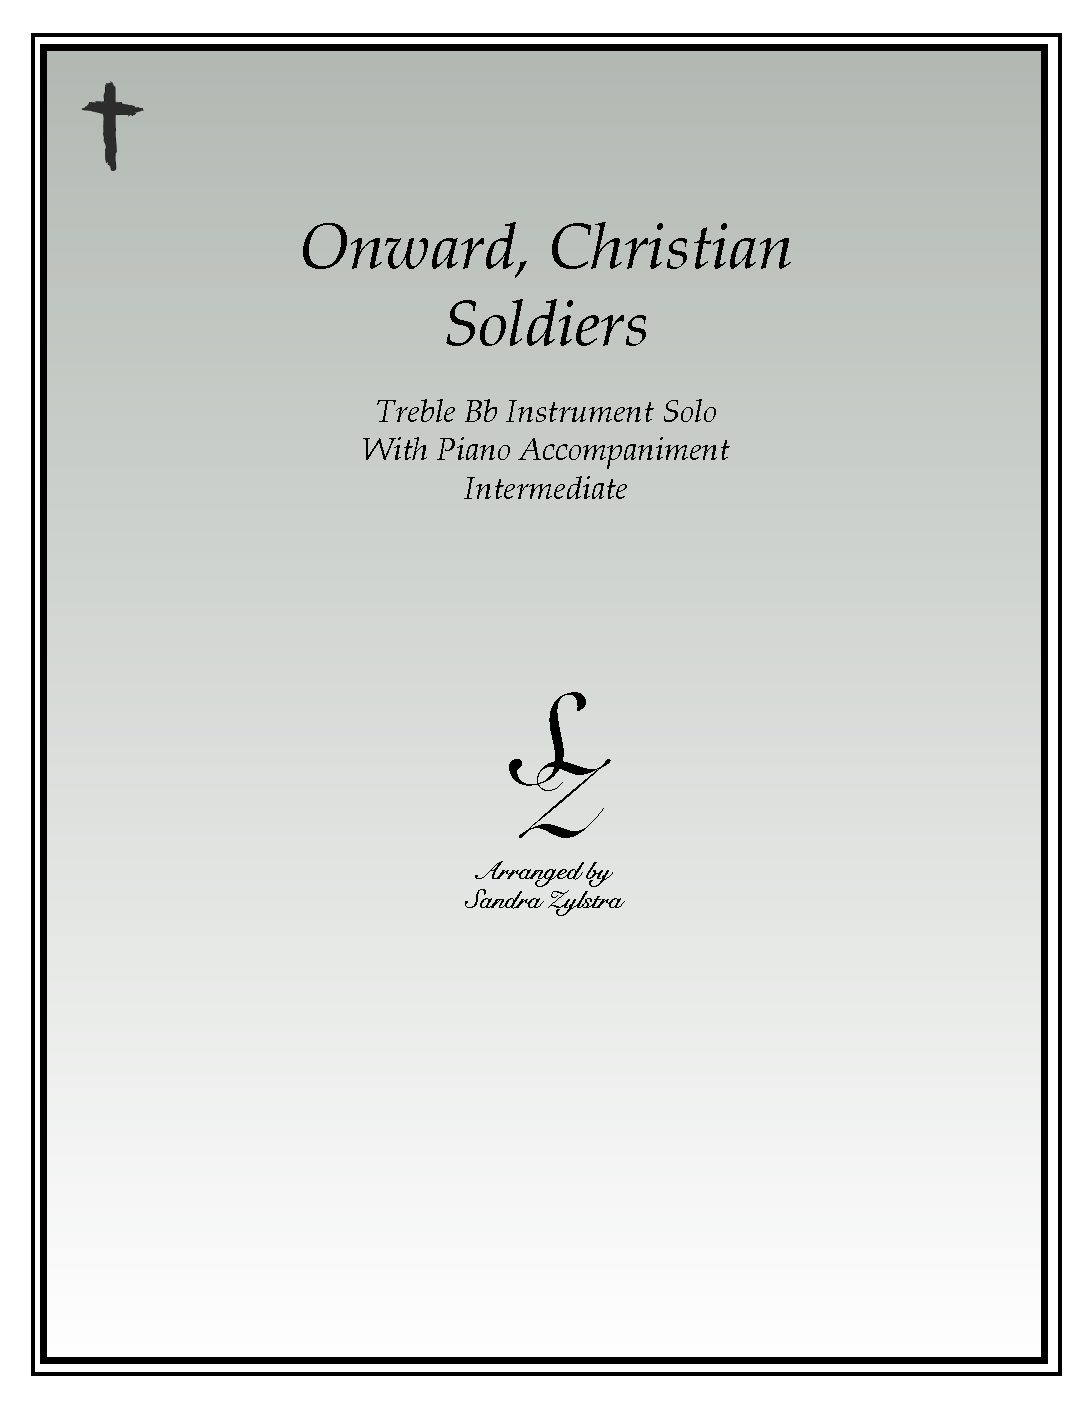 Onward, Christian Soldiers -Treble Bb Instrument Solo